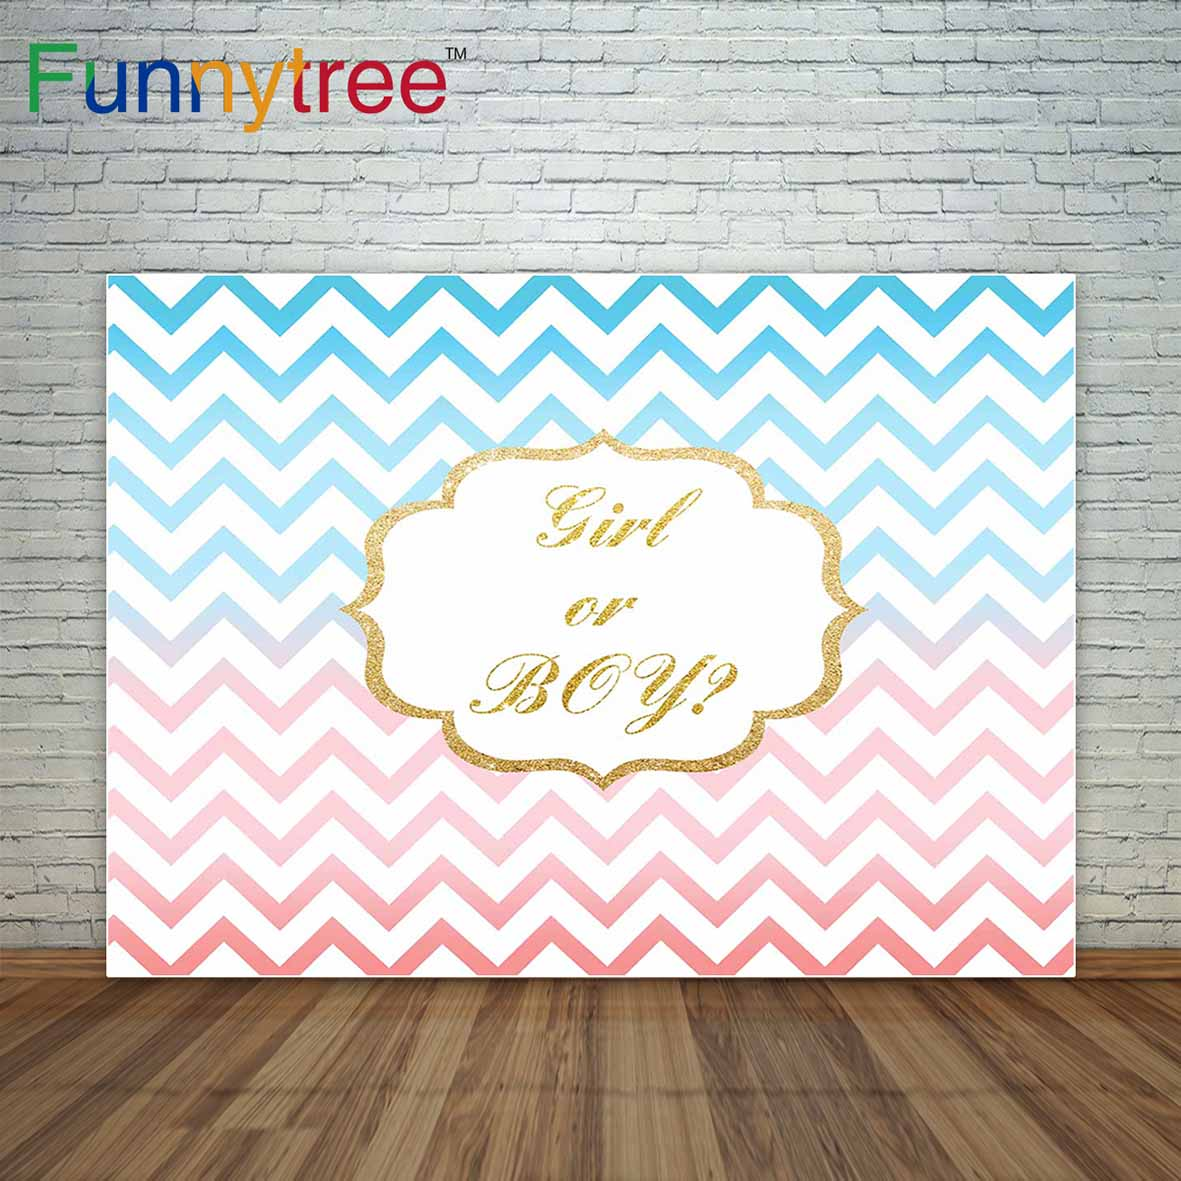 Buy Pink Chevron Backgrounds And Get Free Shipping On AliExpress